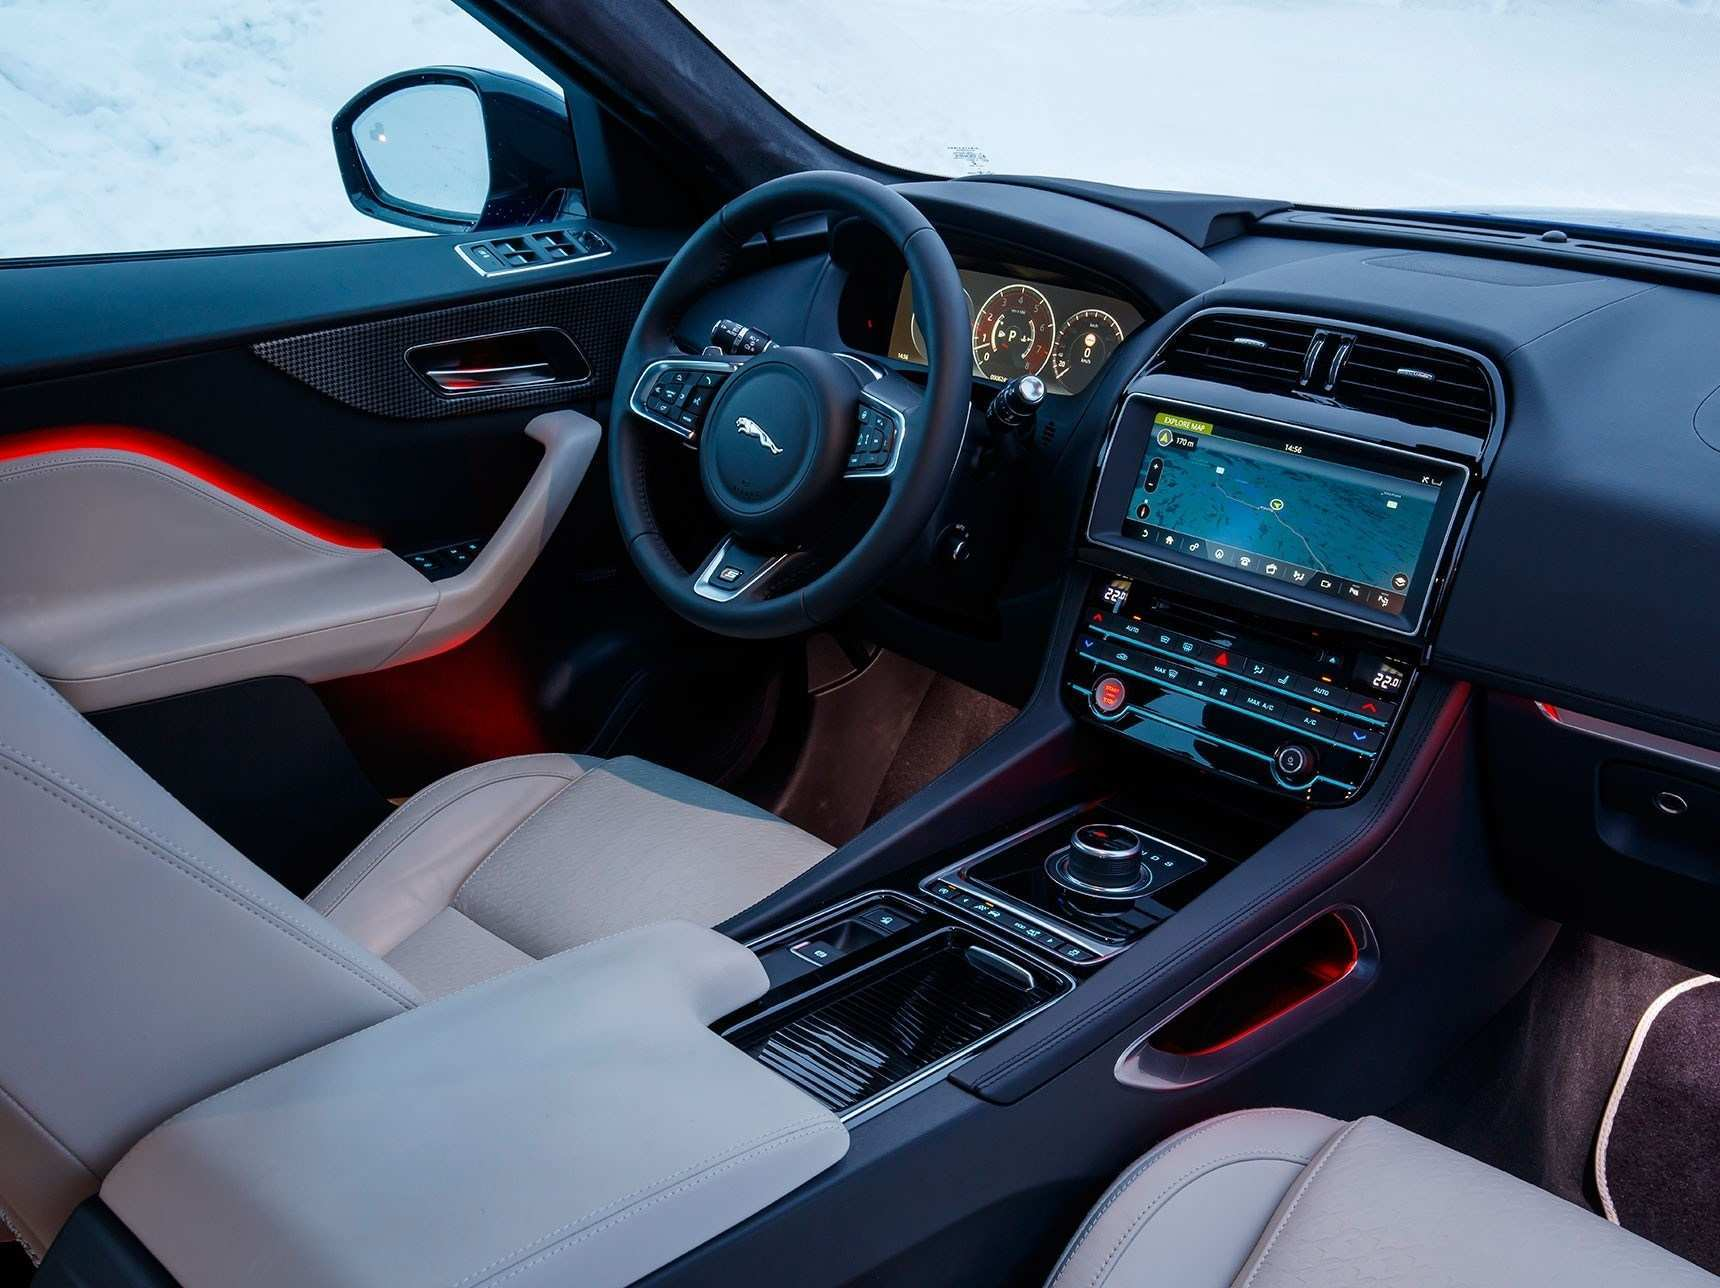 78 The Best Jaguar F Pace 2020 Interior Price And Release Date